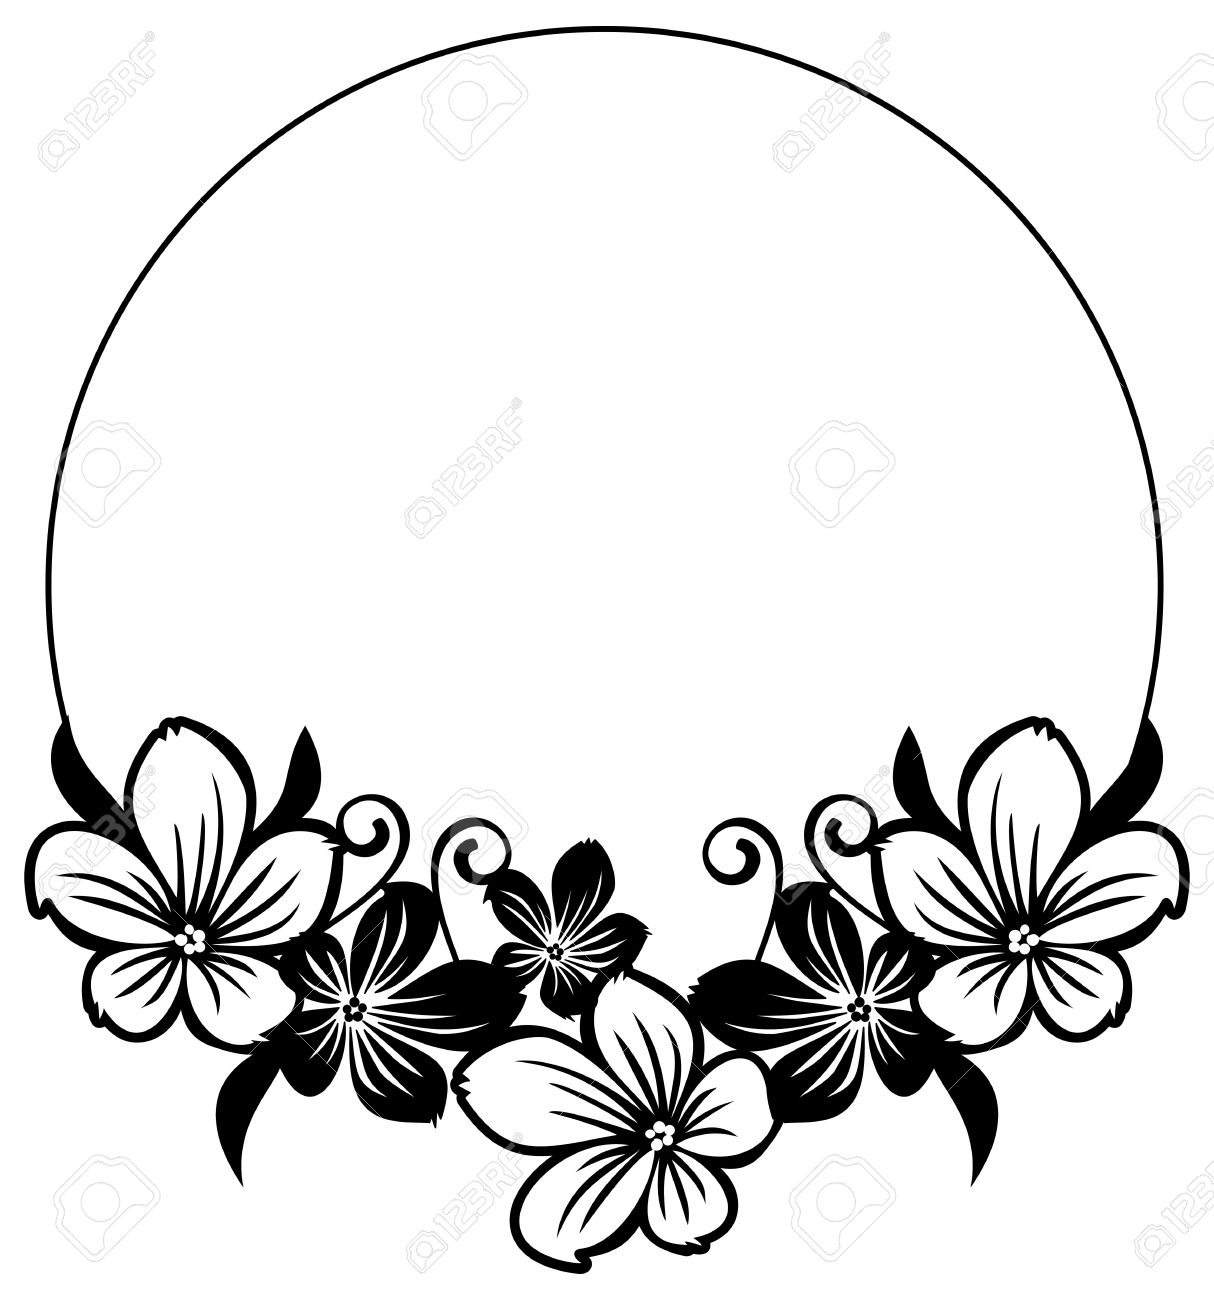 black and white round frame with abstract flowers silhouettes rh 123rf com black and white flower clipart png black and white flower clipart images